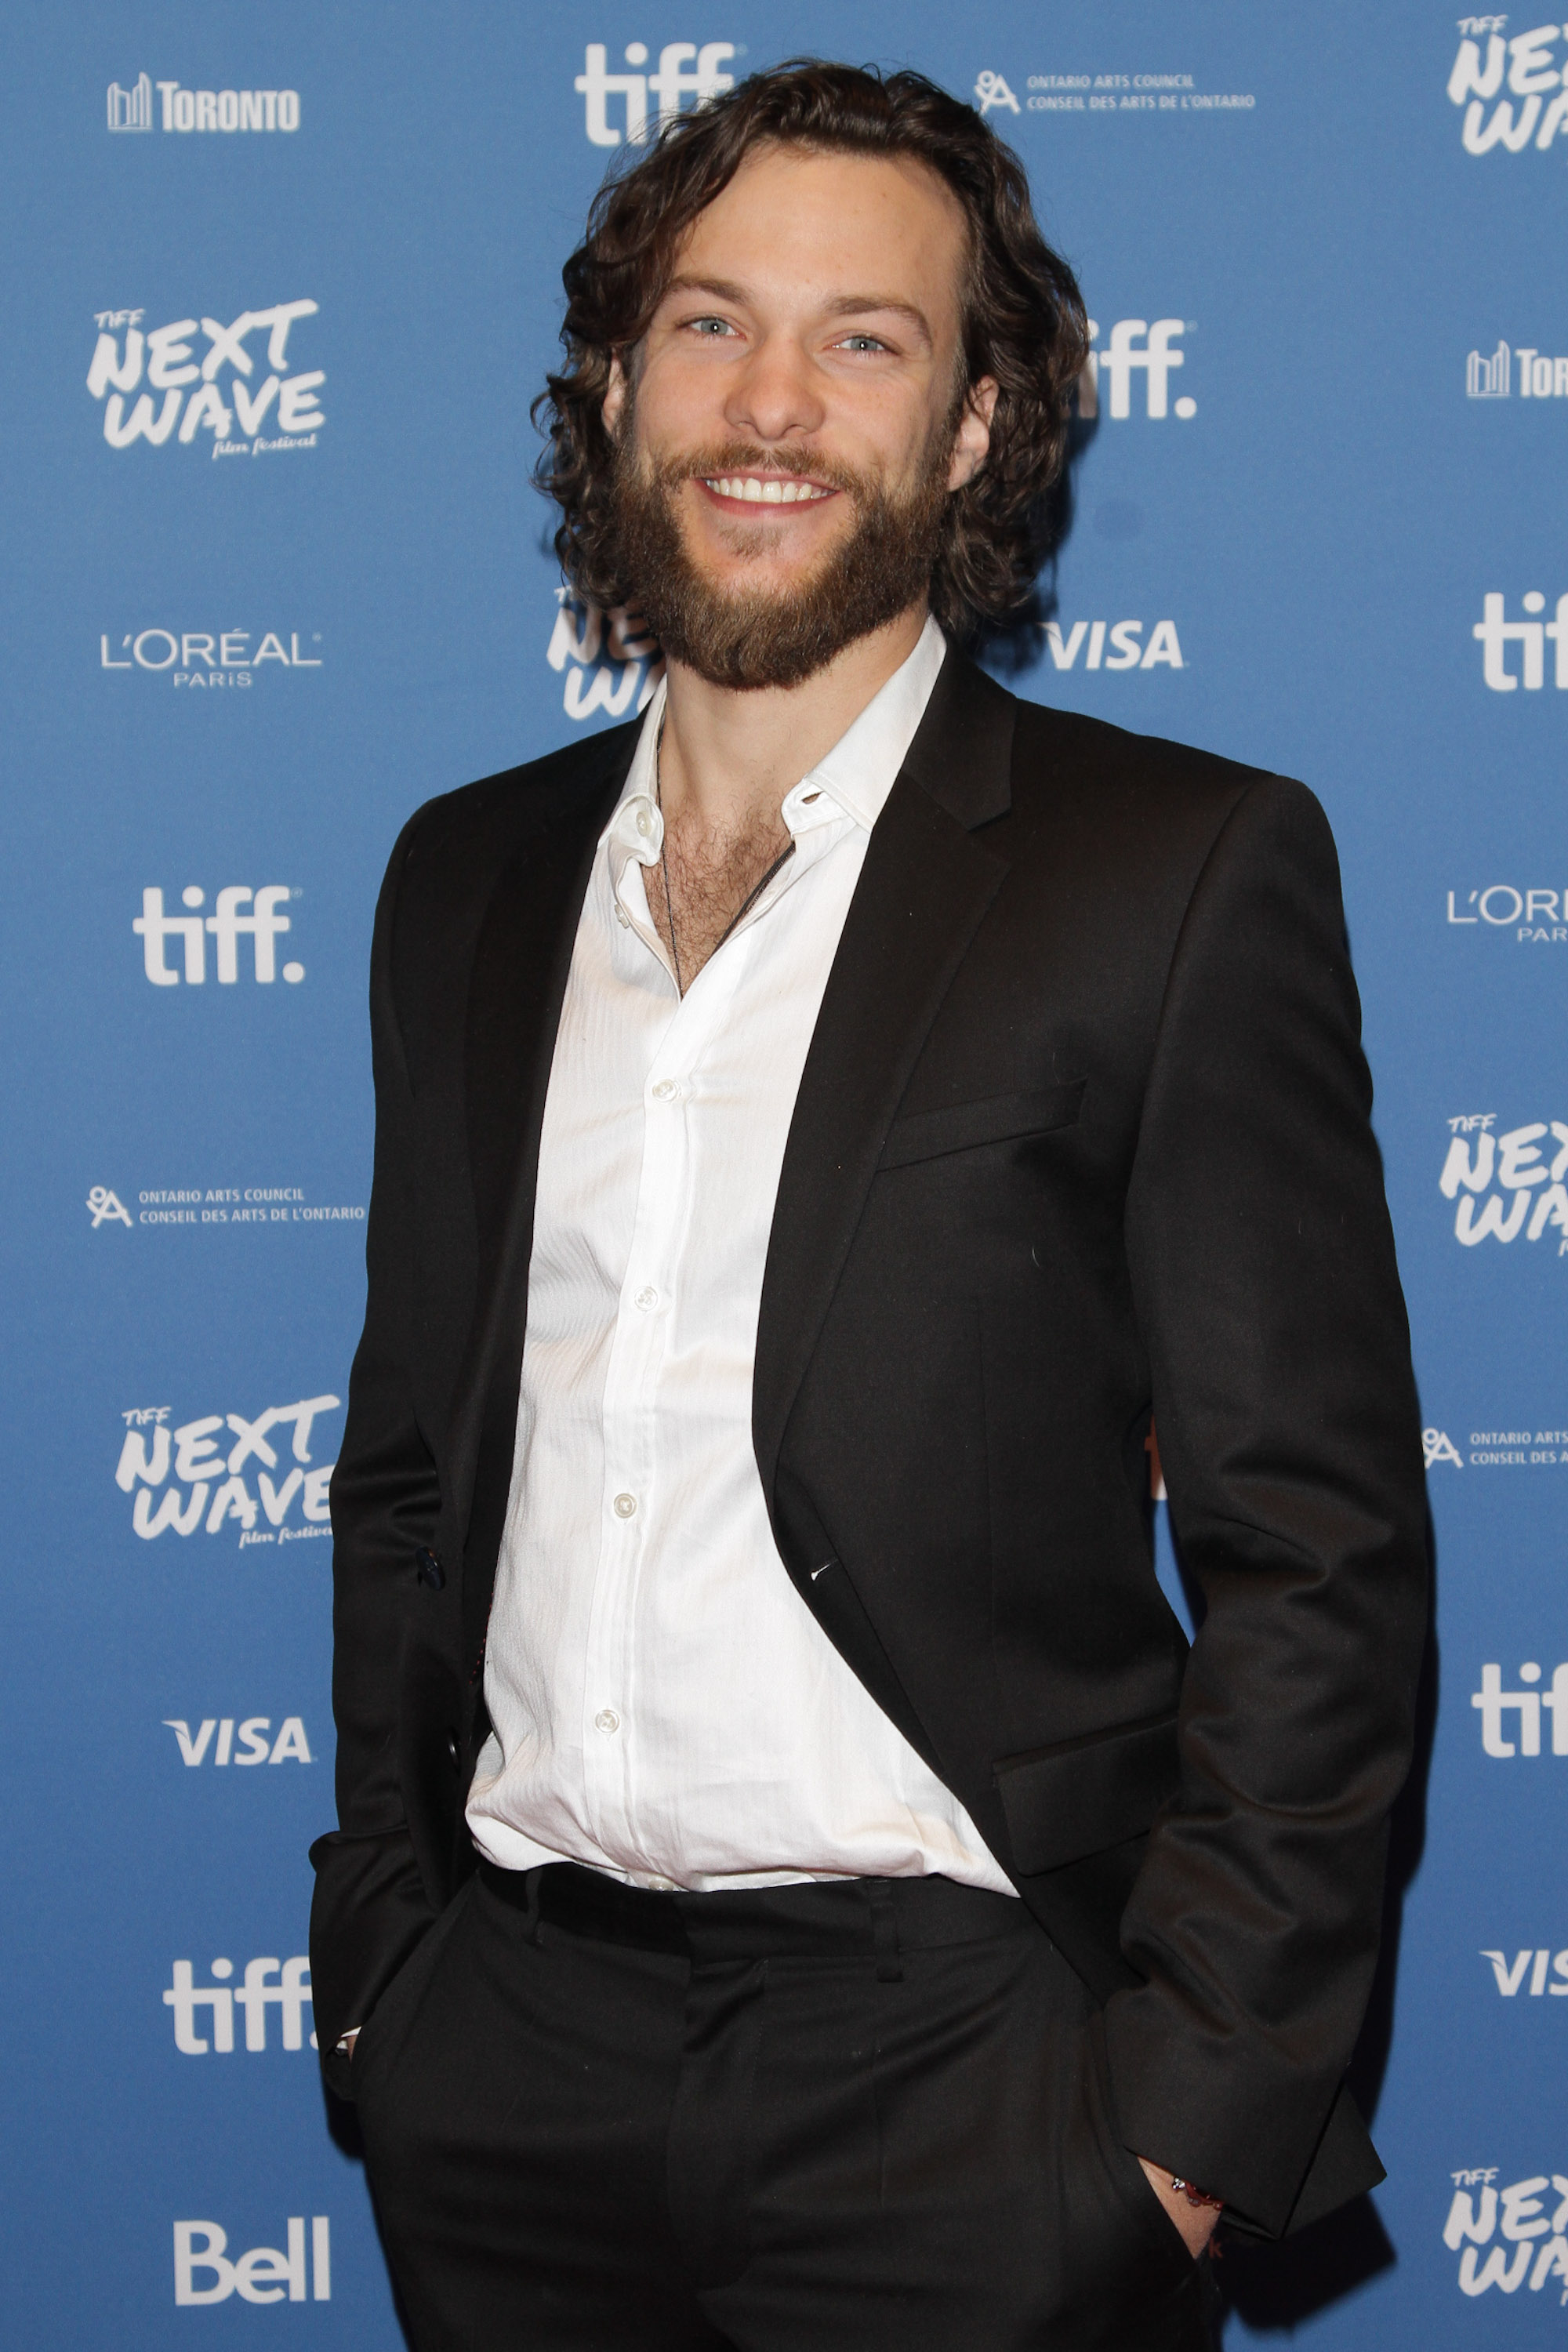 Kyle Schmid at the TIFF Next Wave Film Festival for Dead Before Dawn 3D's North American Premiere.  Photo by: Sarjoun Faour, WireImage/Getty for TIFF